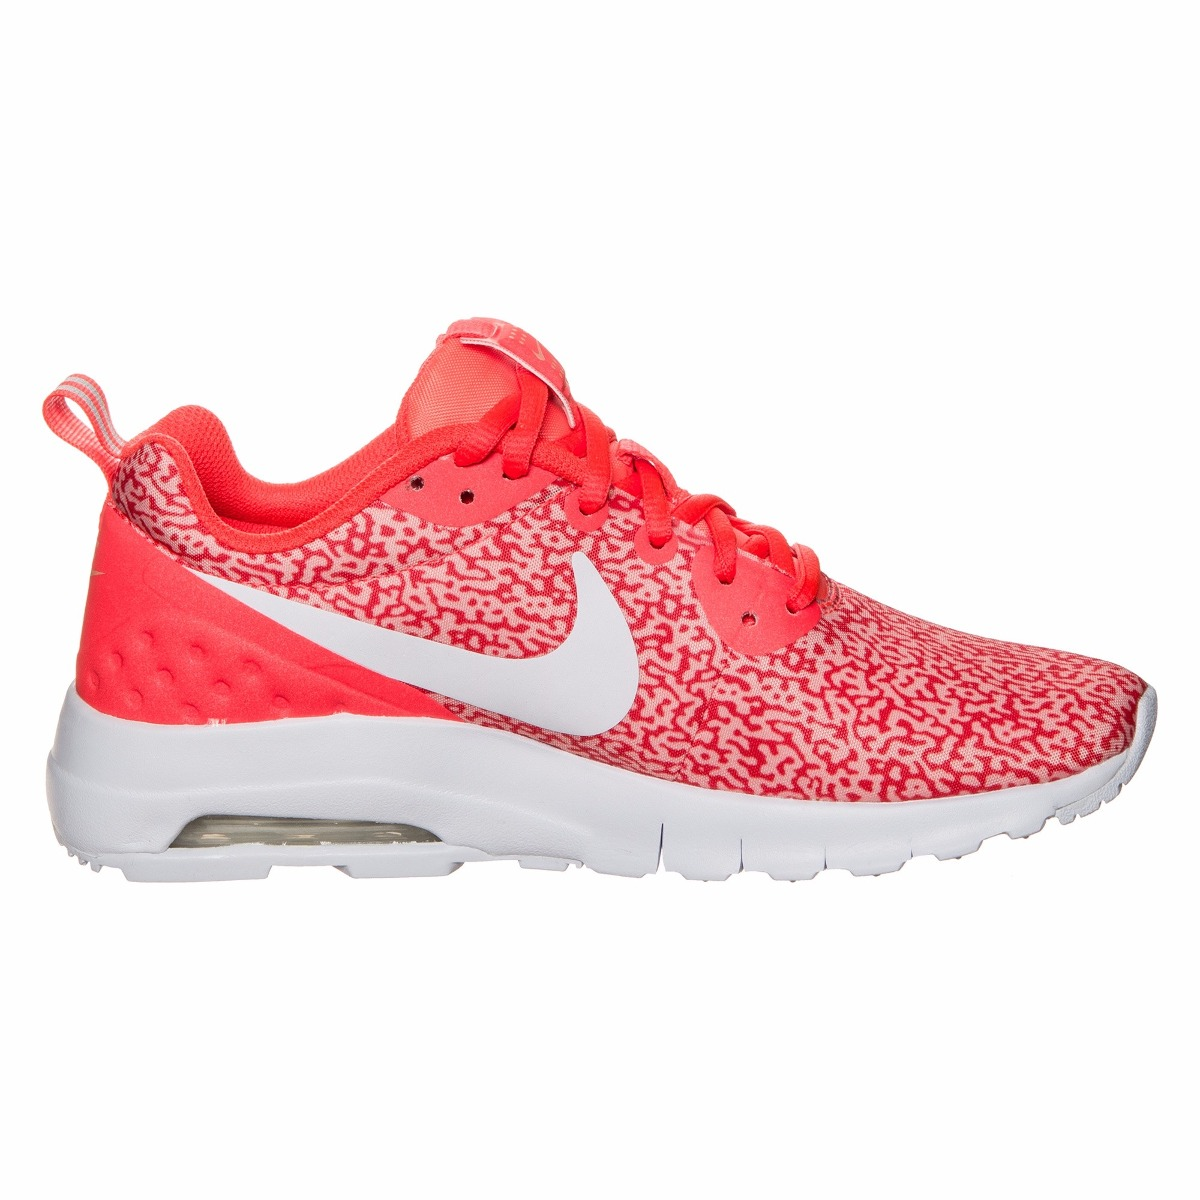 best authentic d96e6 3fd22 tenis nike sportswear air max motion terracota dama 2016. Cargando zoom.